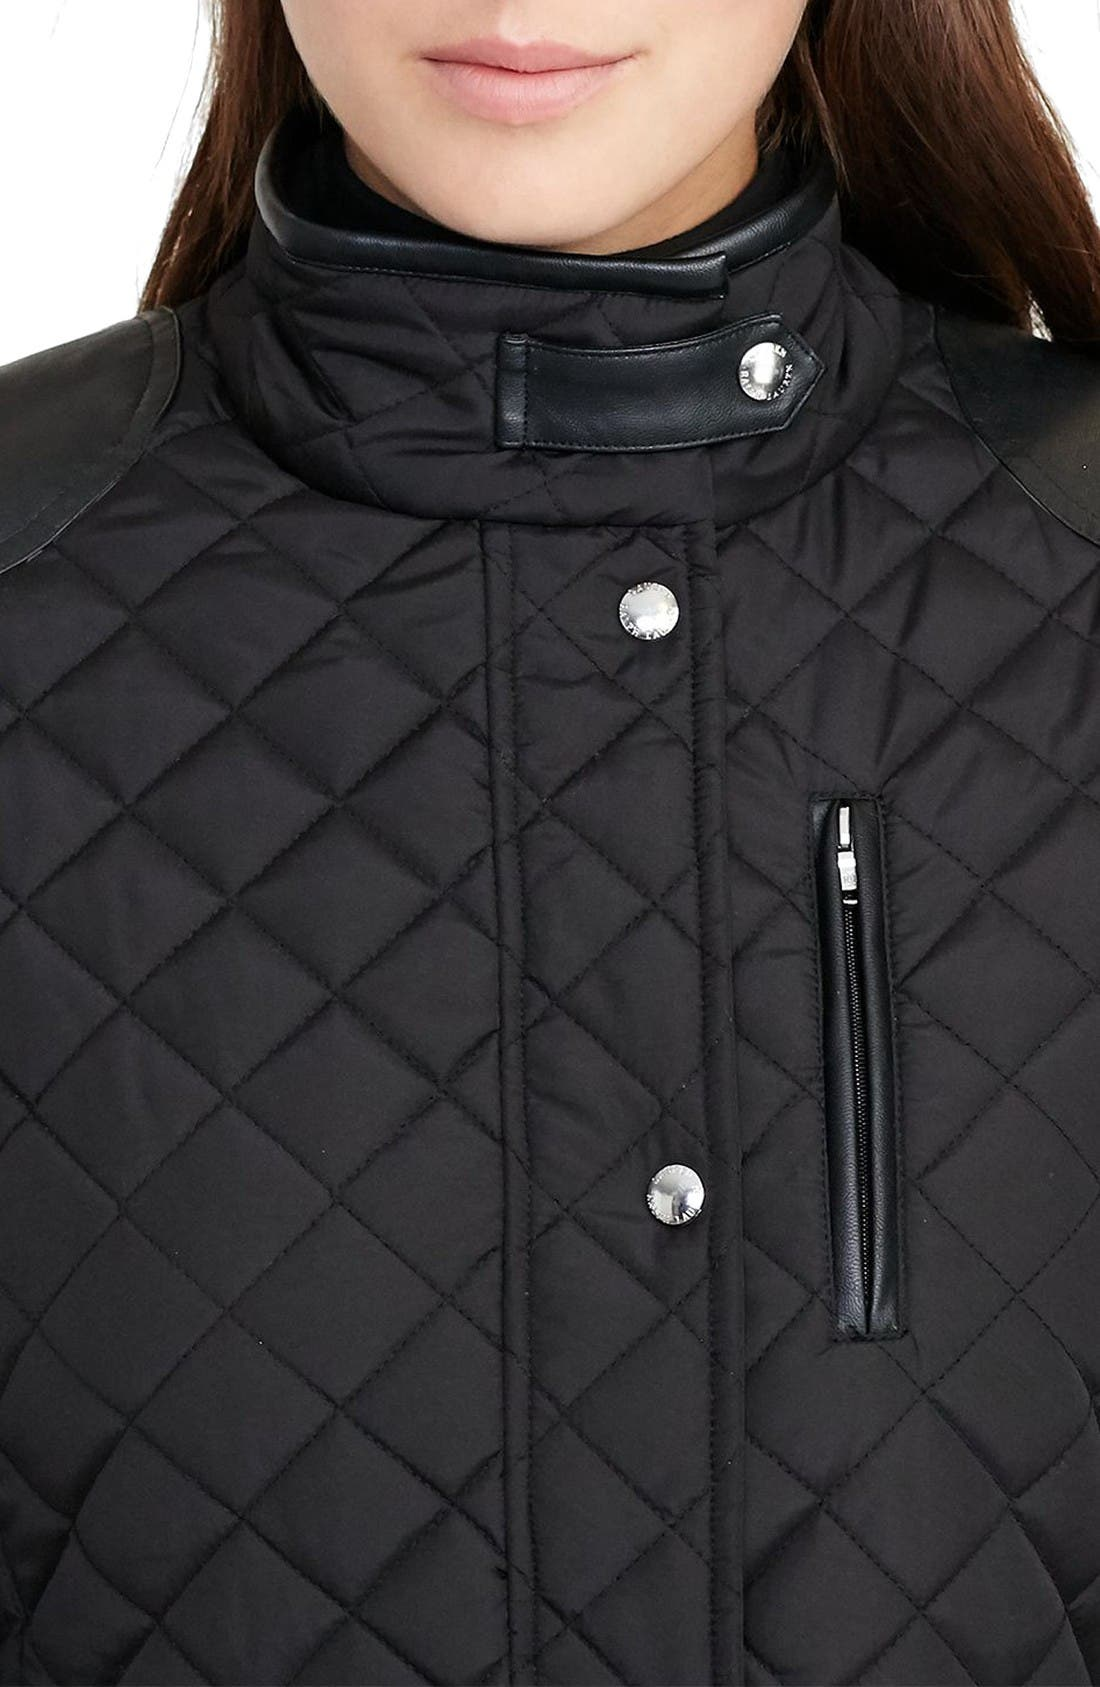 Alternate Image 3  - Lauren Ralph Lauren Faux Leather Trim Quilted Jacket